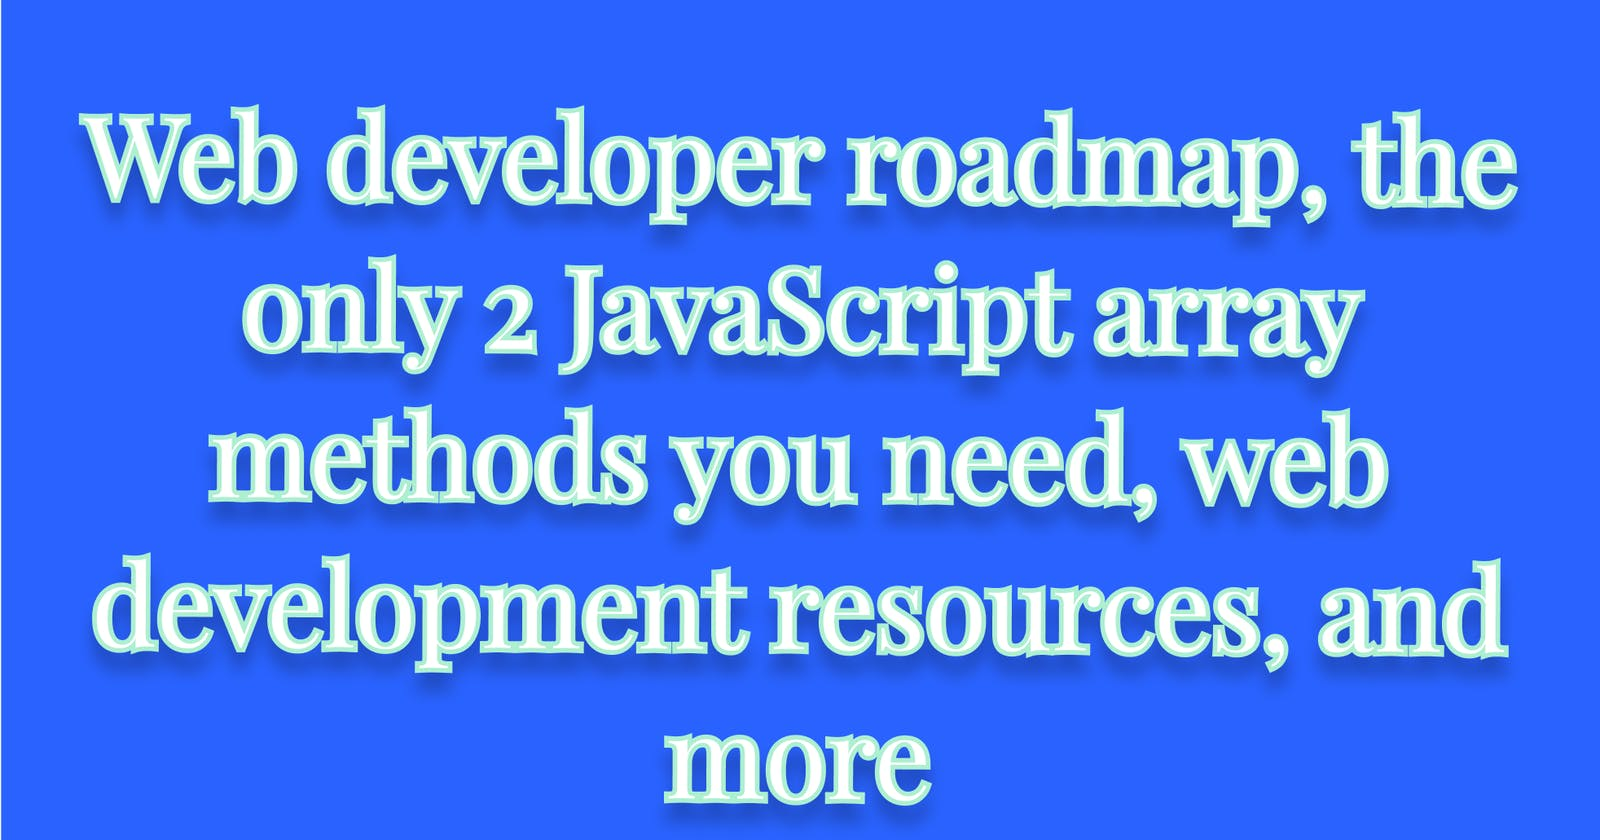 Web developer roadmap, the only 2 JavaScript array methods you need, web development resources, and more  My 10 favorite Tech Twitter tweets from the